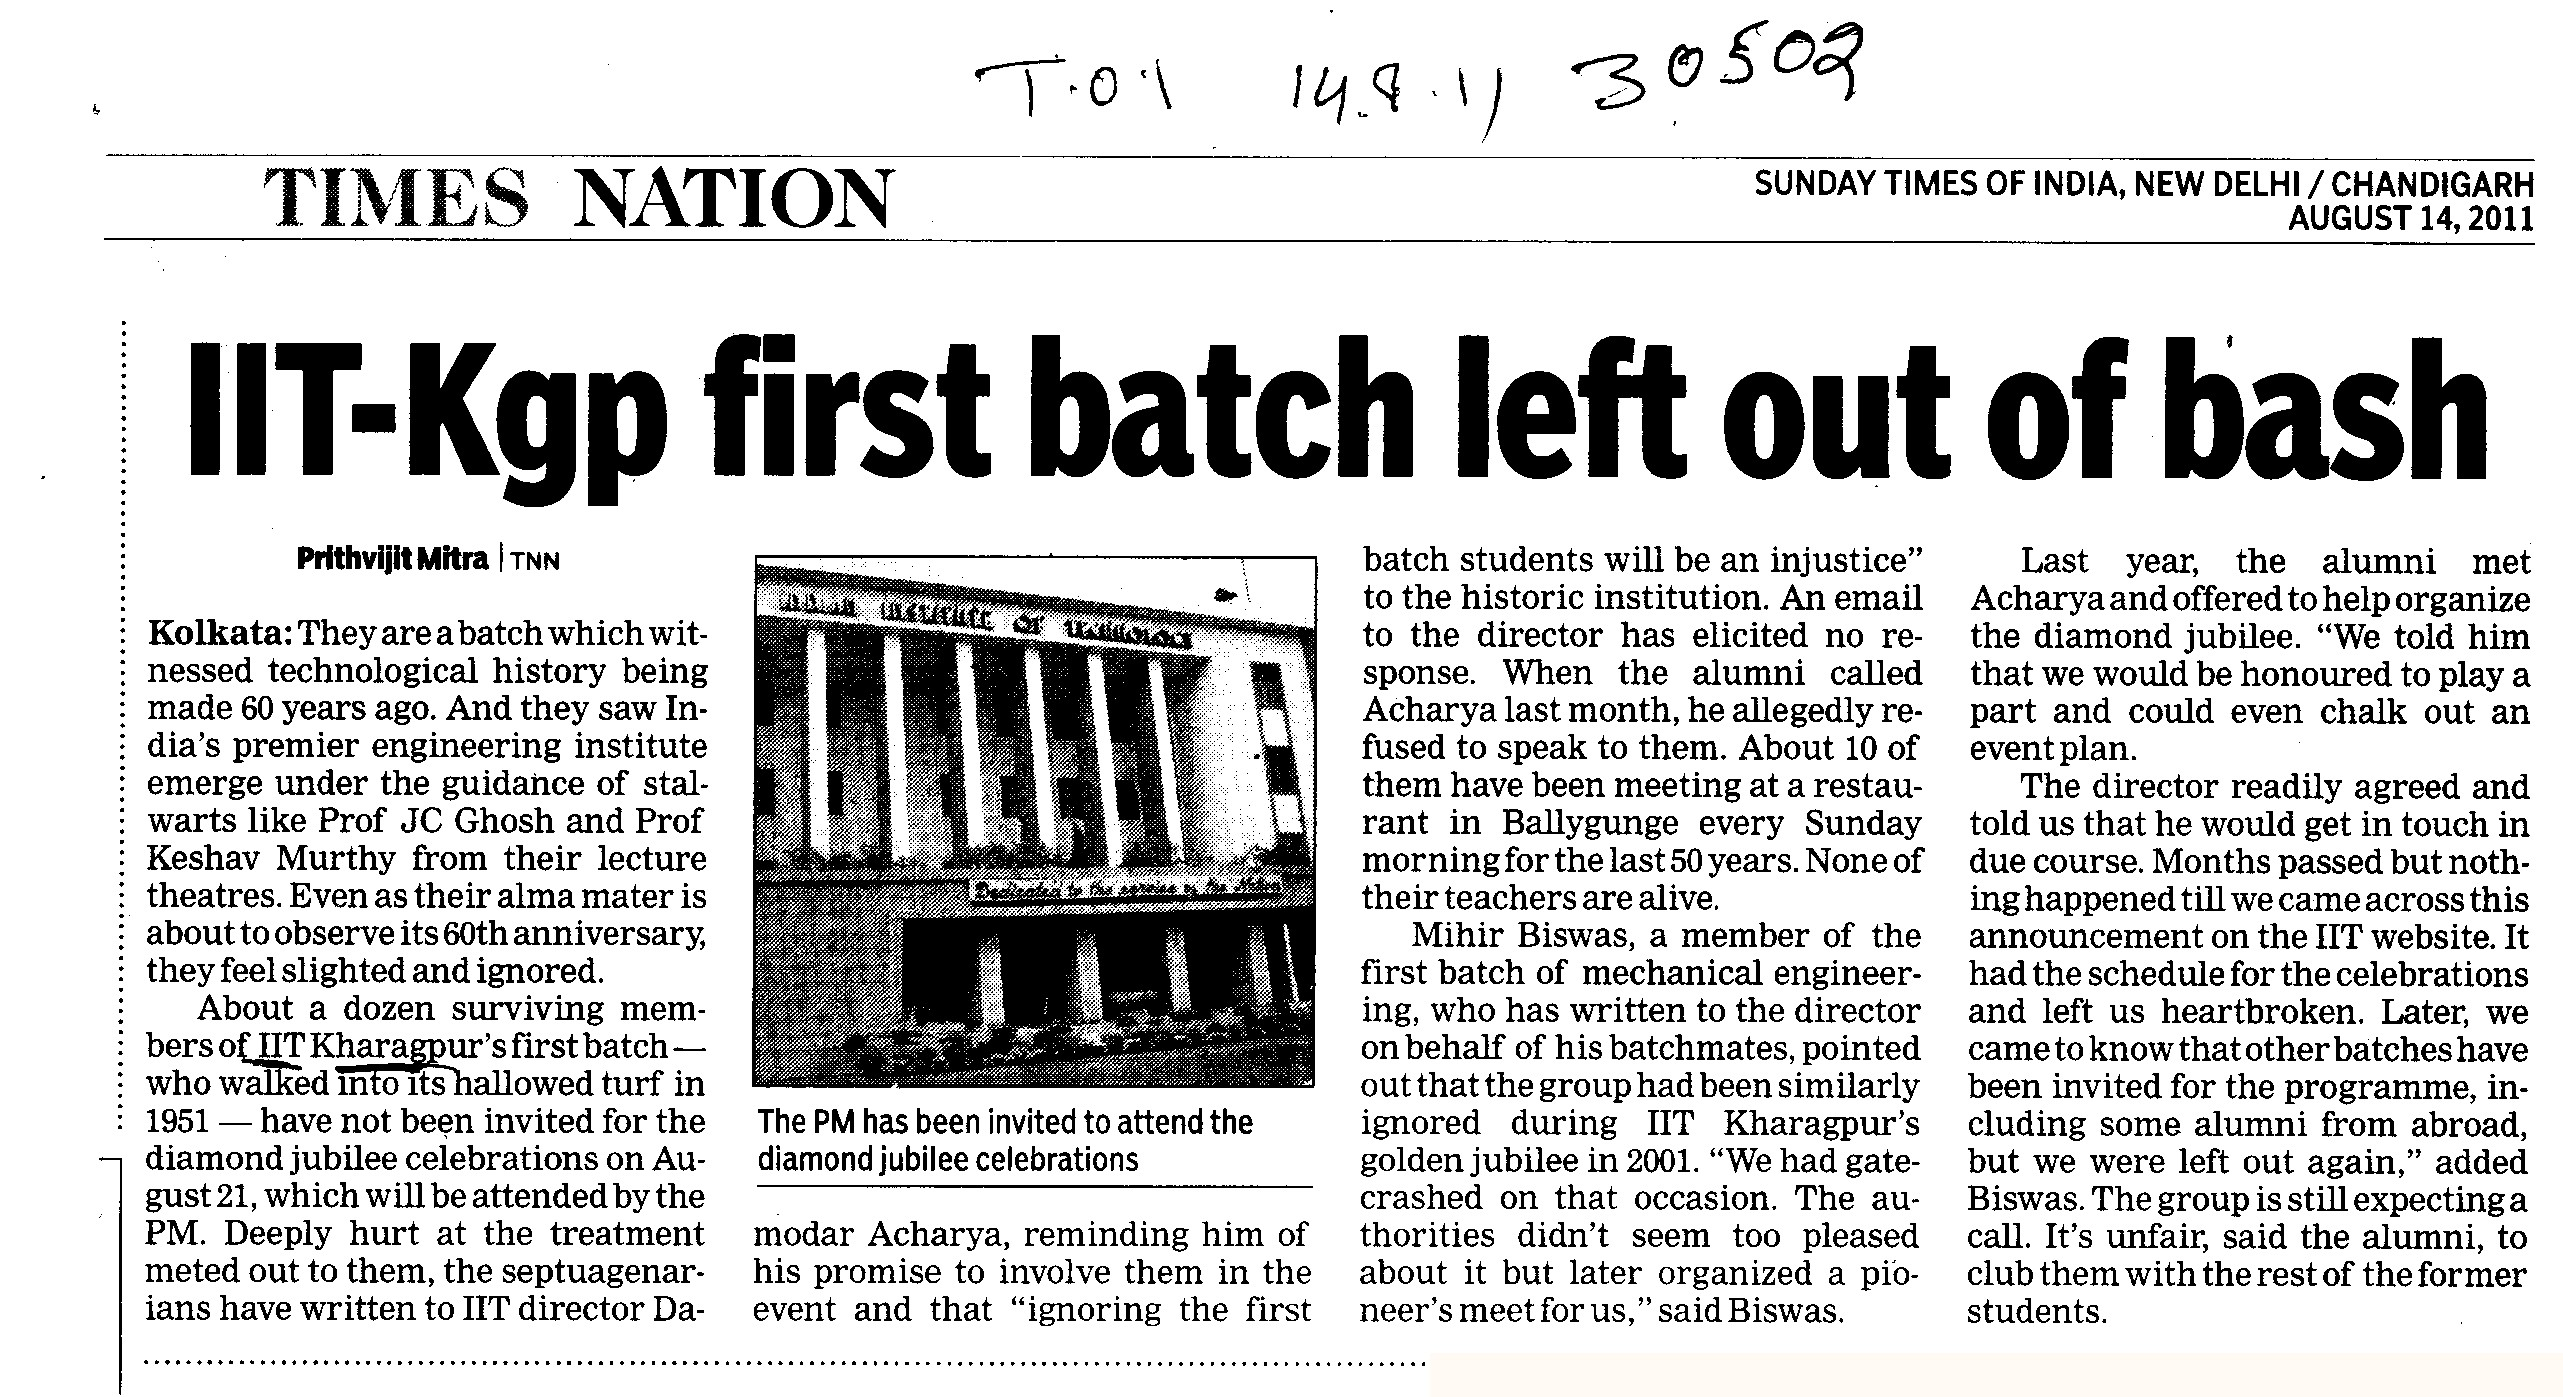 Indian institute of technology kharagpur - Iit Kgp First Batch Left Out Of Bash News